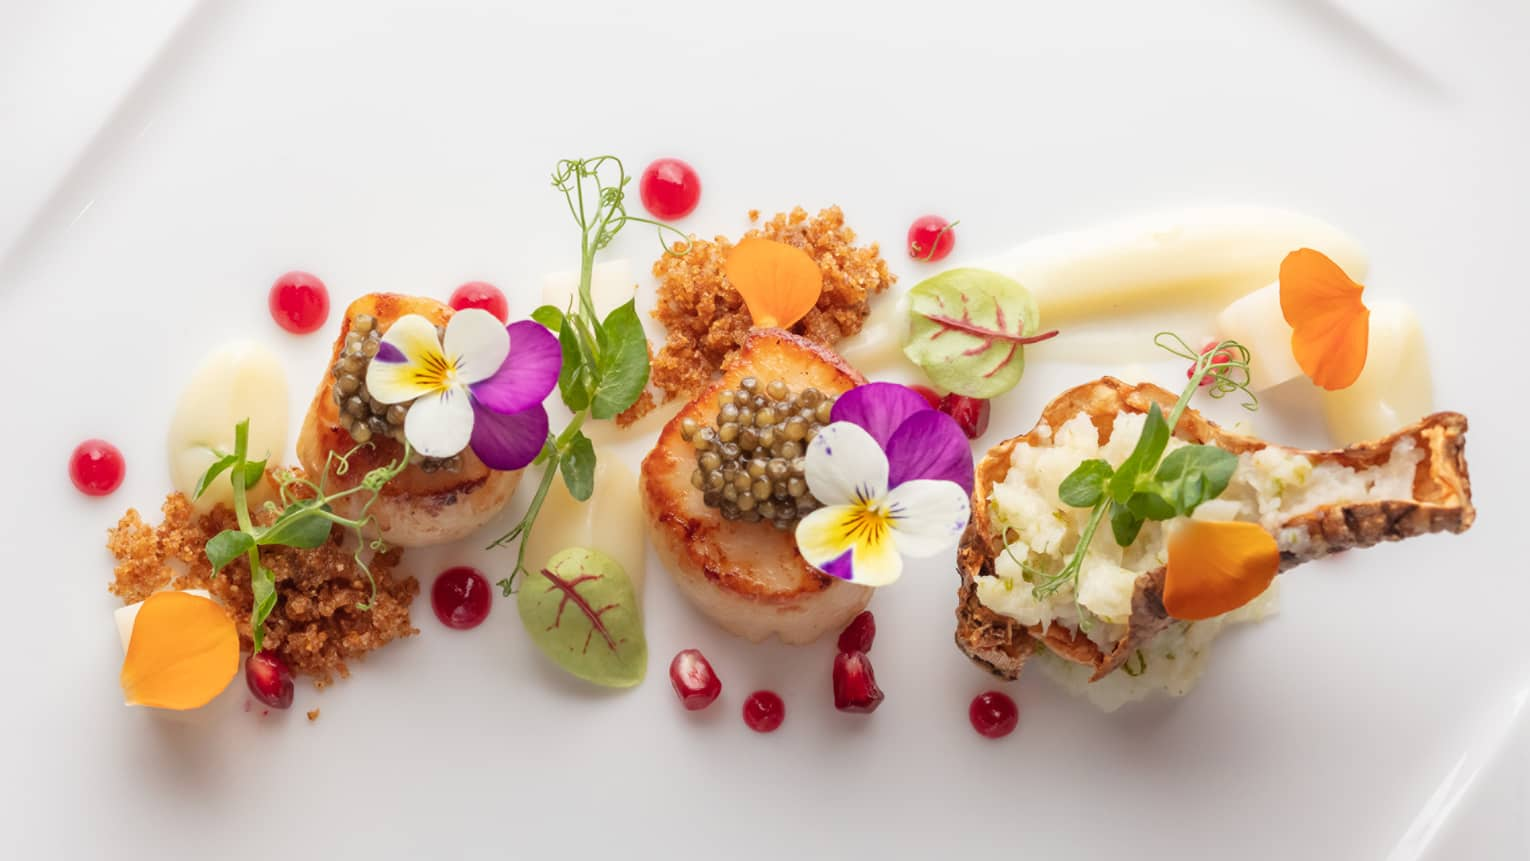 Aerial view of gourmet entree, scallops garnished with edible flowers, herbs